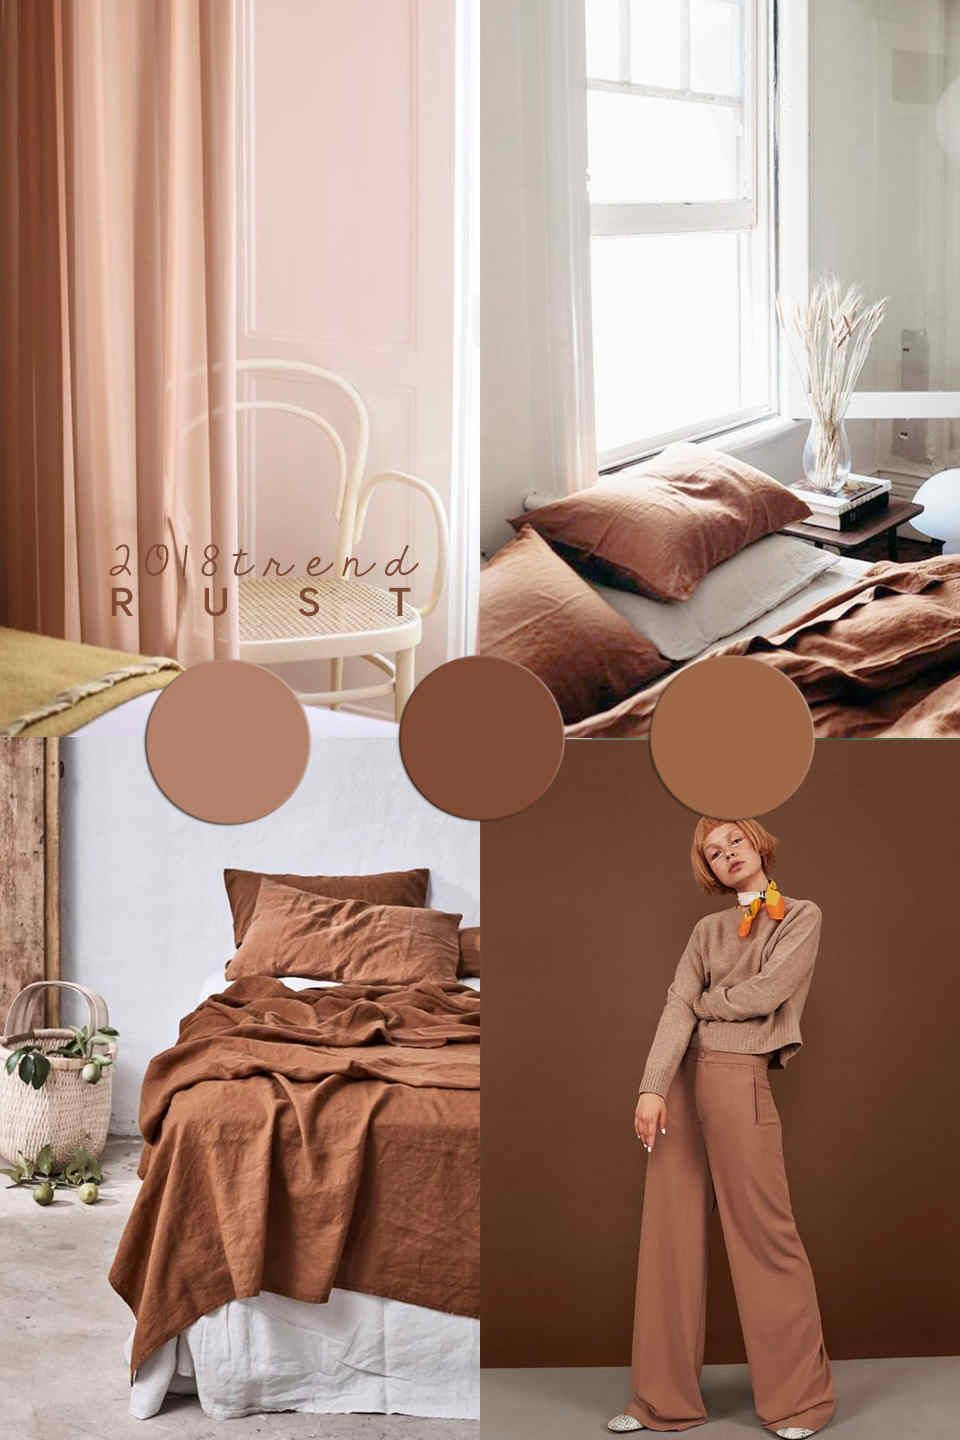 INTERIOR COLOR TRENDS | Rust is the color everybody loves now